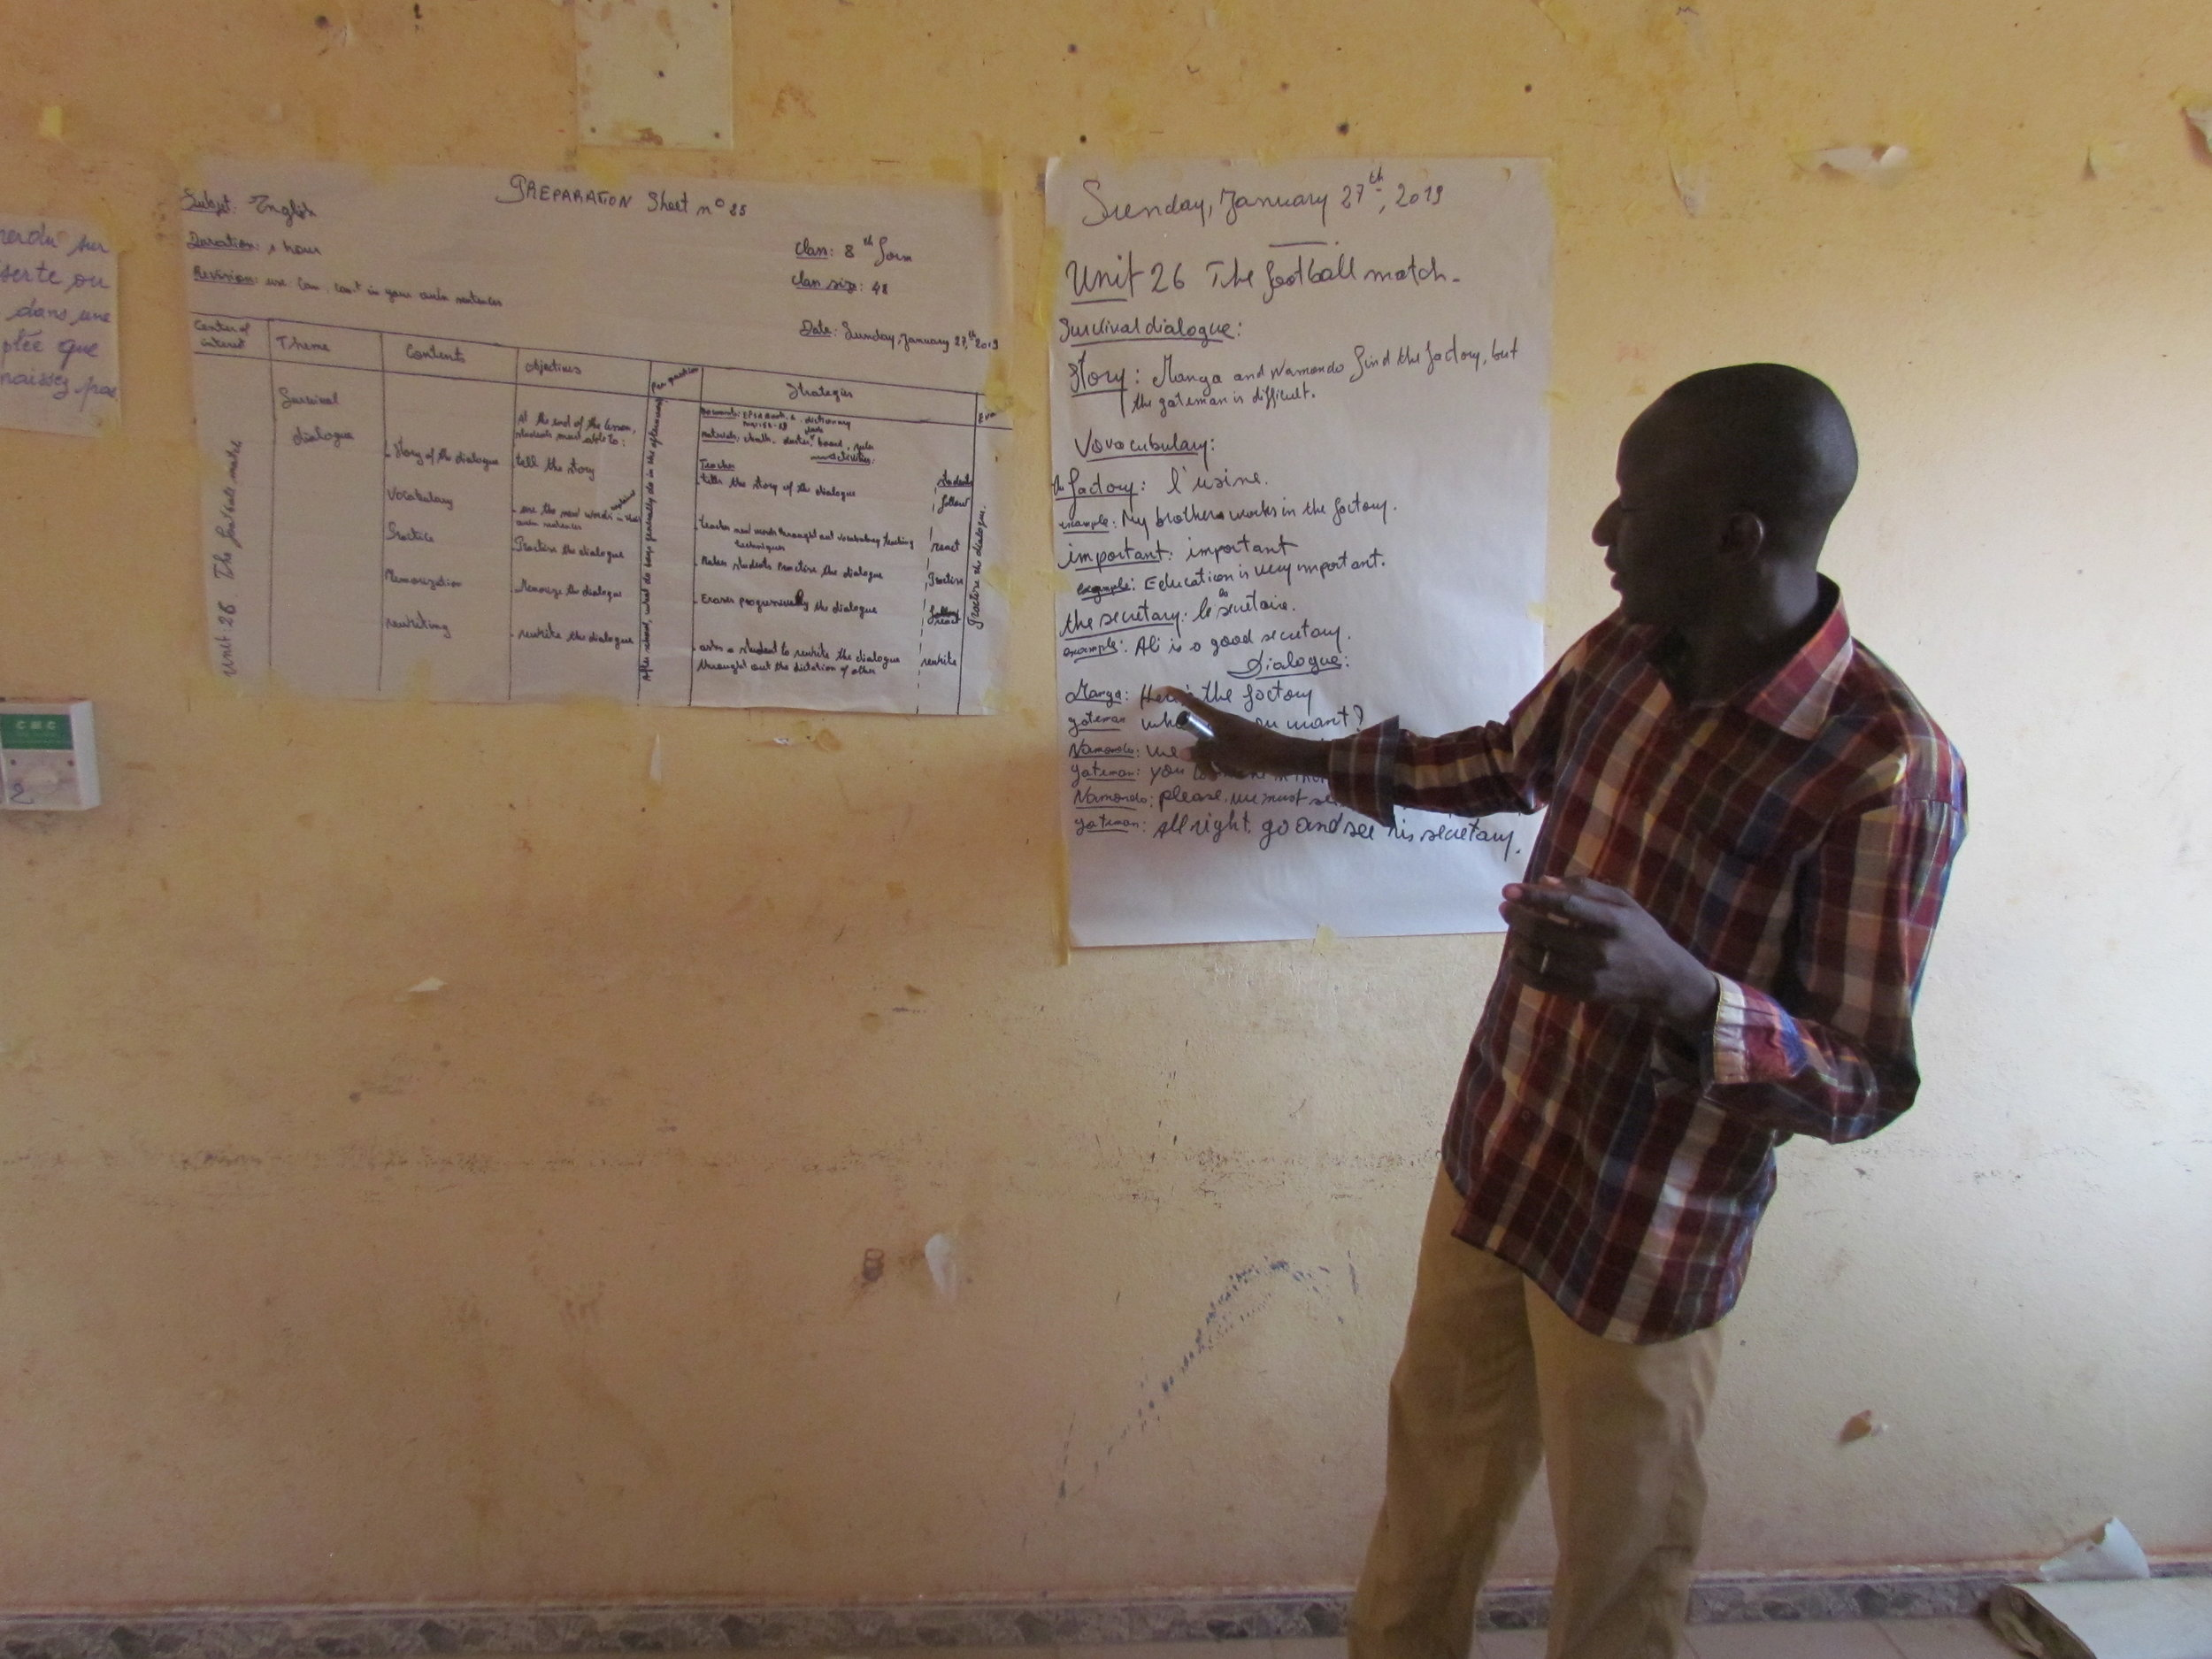 An English teacher presents his lesson using a story about soccer to engage learners with the material.